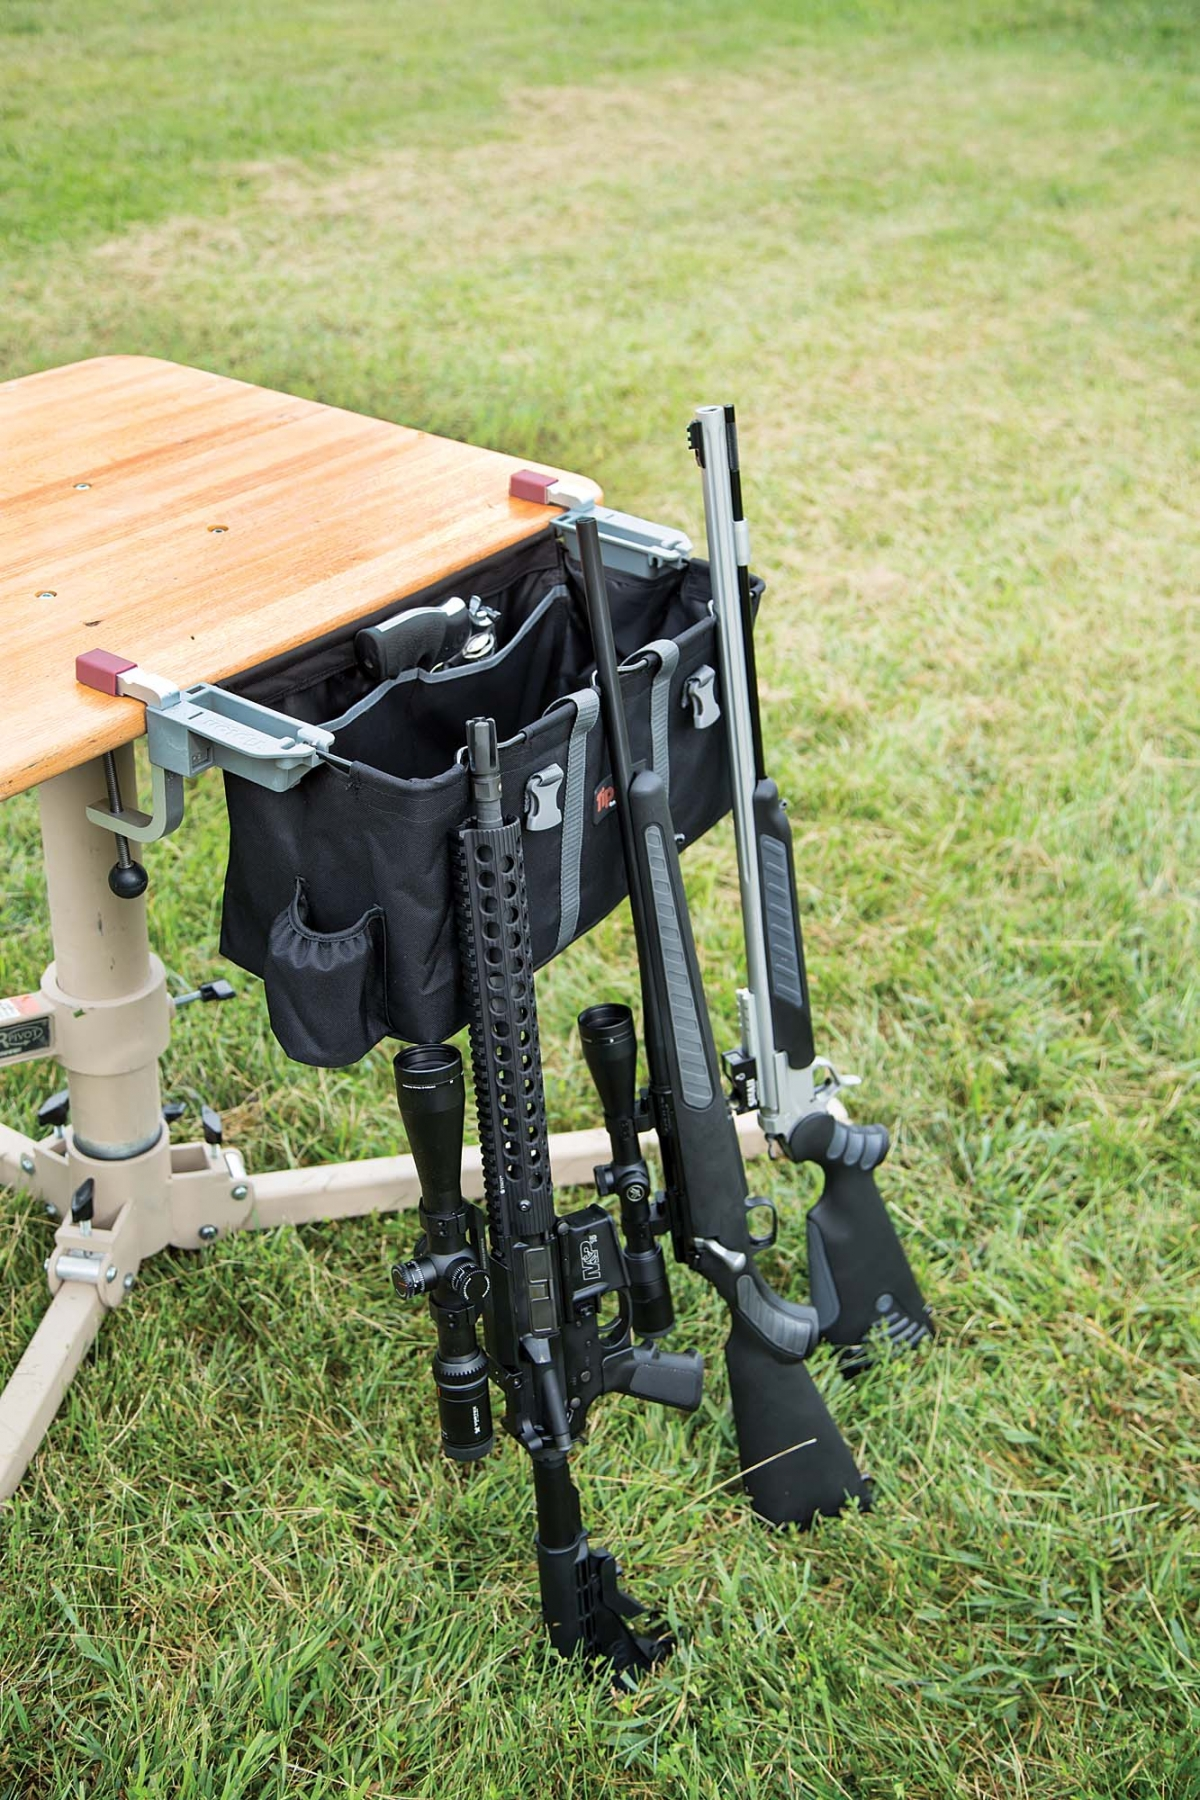 The Tipton Transporter Range Vise, from Battenfeld Technologies, is the perfect addition to your next trip to the range